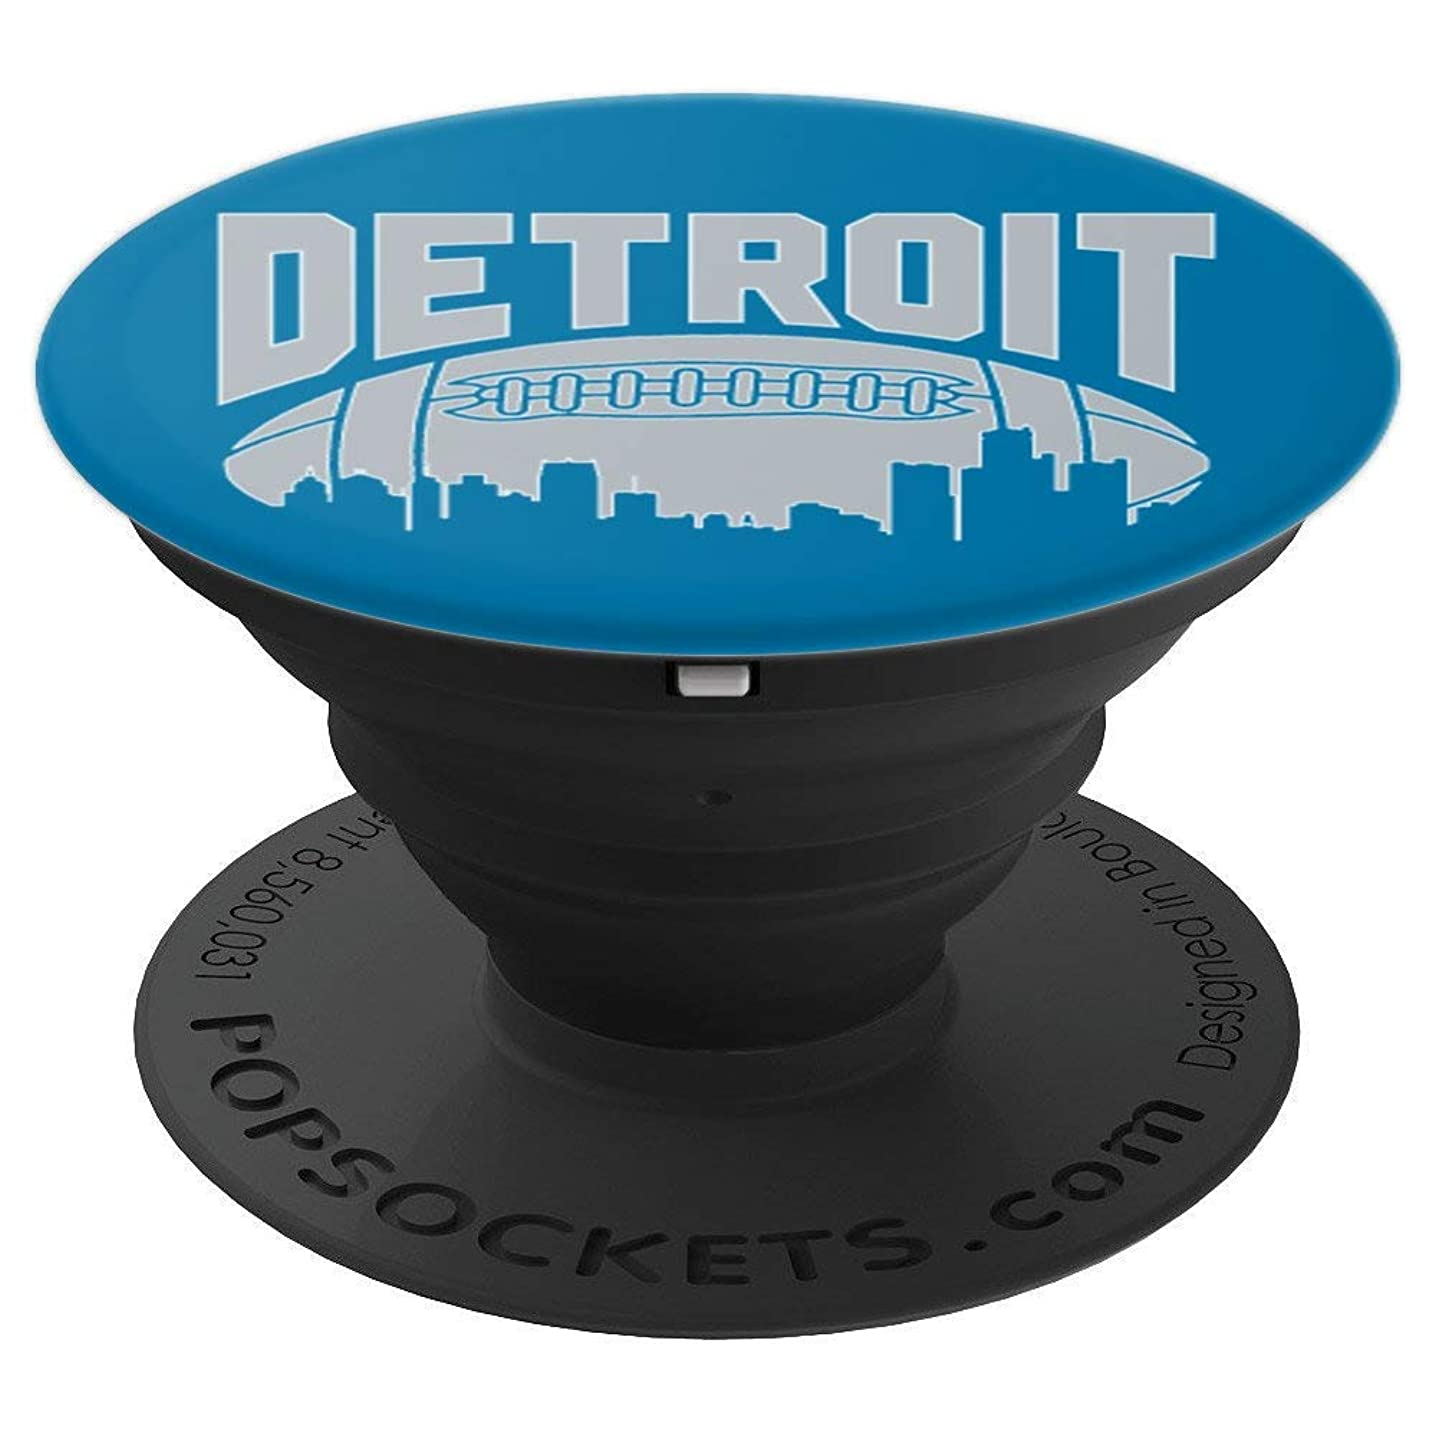 Detroit, Michigan - Lion Football Gift - PopSockets Grip and Stand for Phones and Tablets